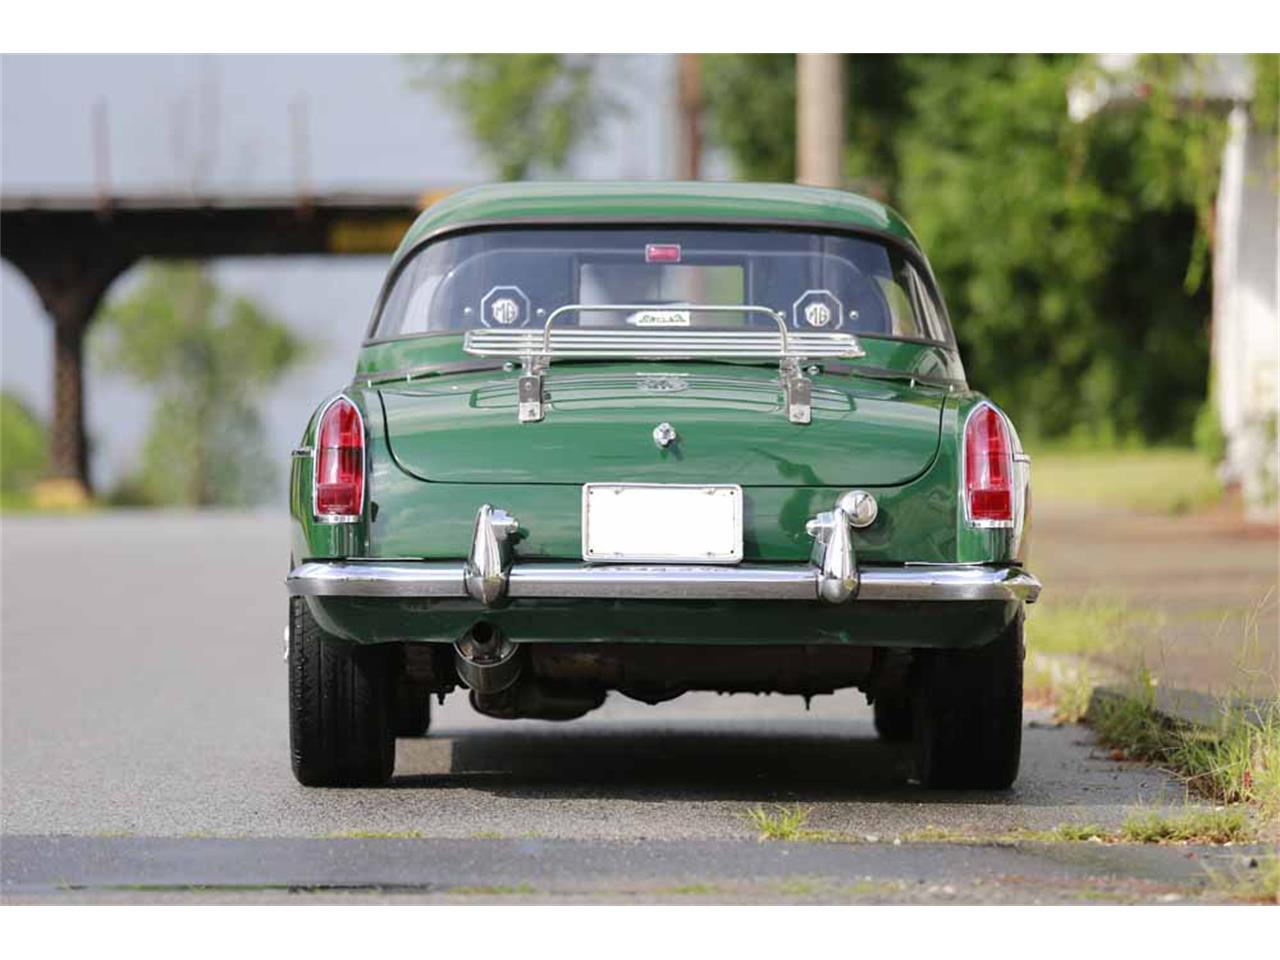 Large Picture of Classic '65 MG MGB Auction Vehicle Offered by Gassman Automotive - J14W